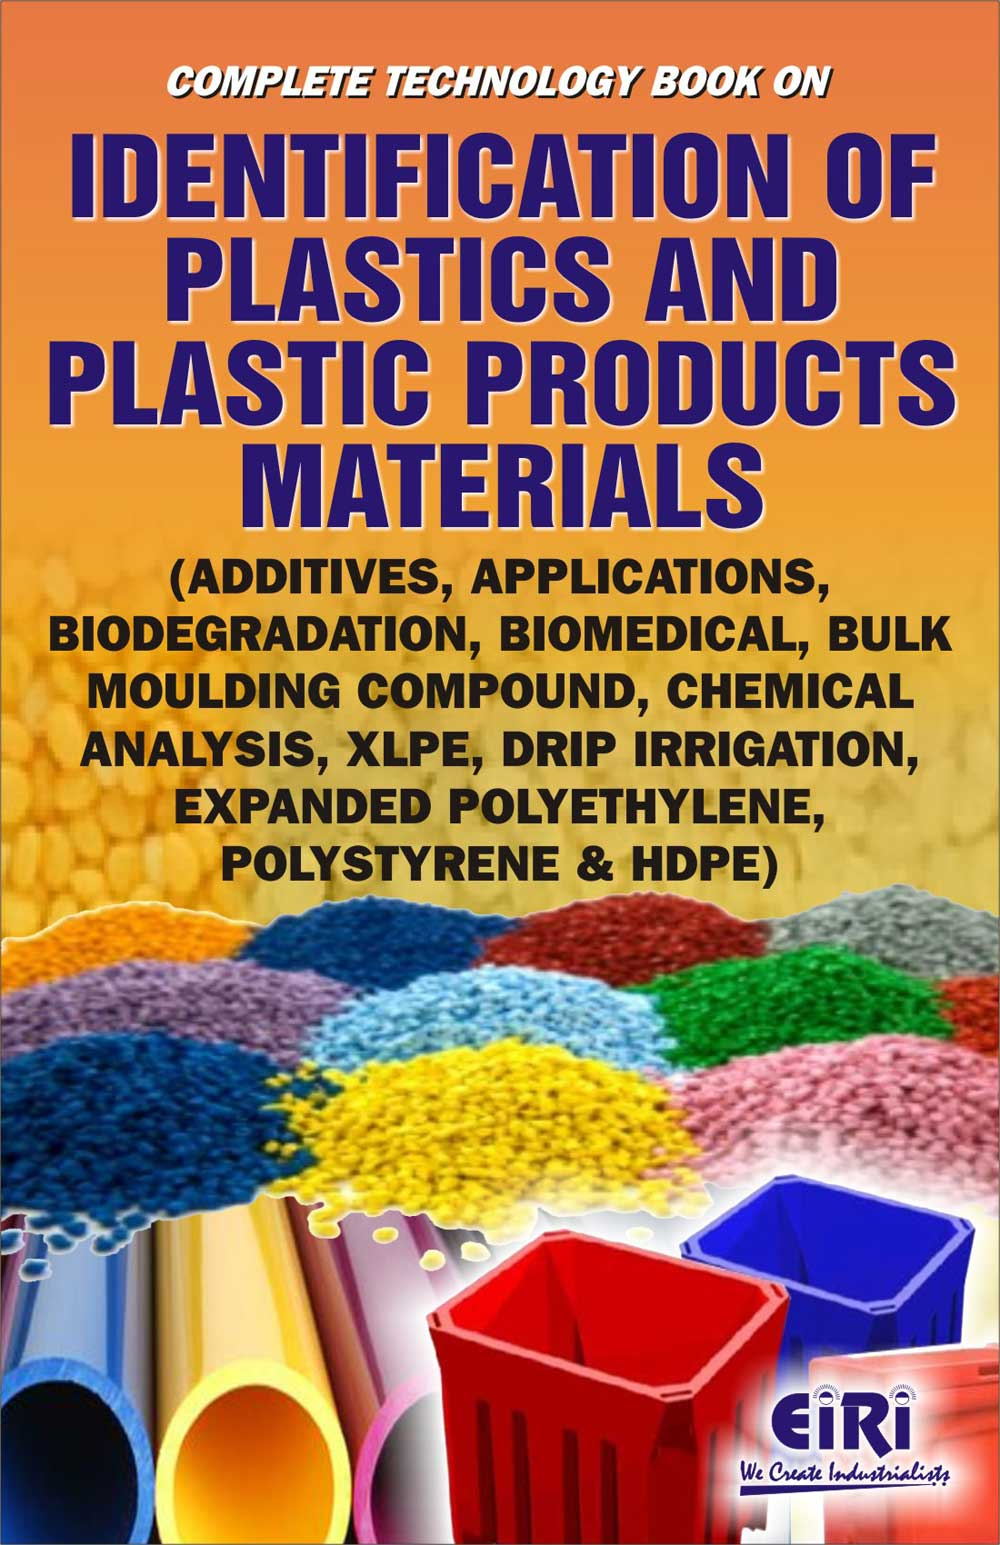 Complete Technology Book on Identification of Plastics and Plastic Products  Materials (Additives, Applications, Biodegradation, Biomedical, Bulk